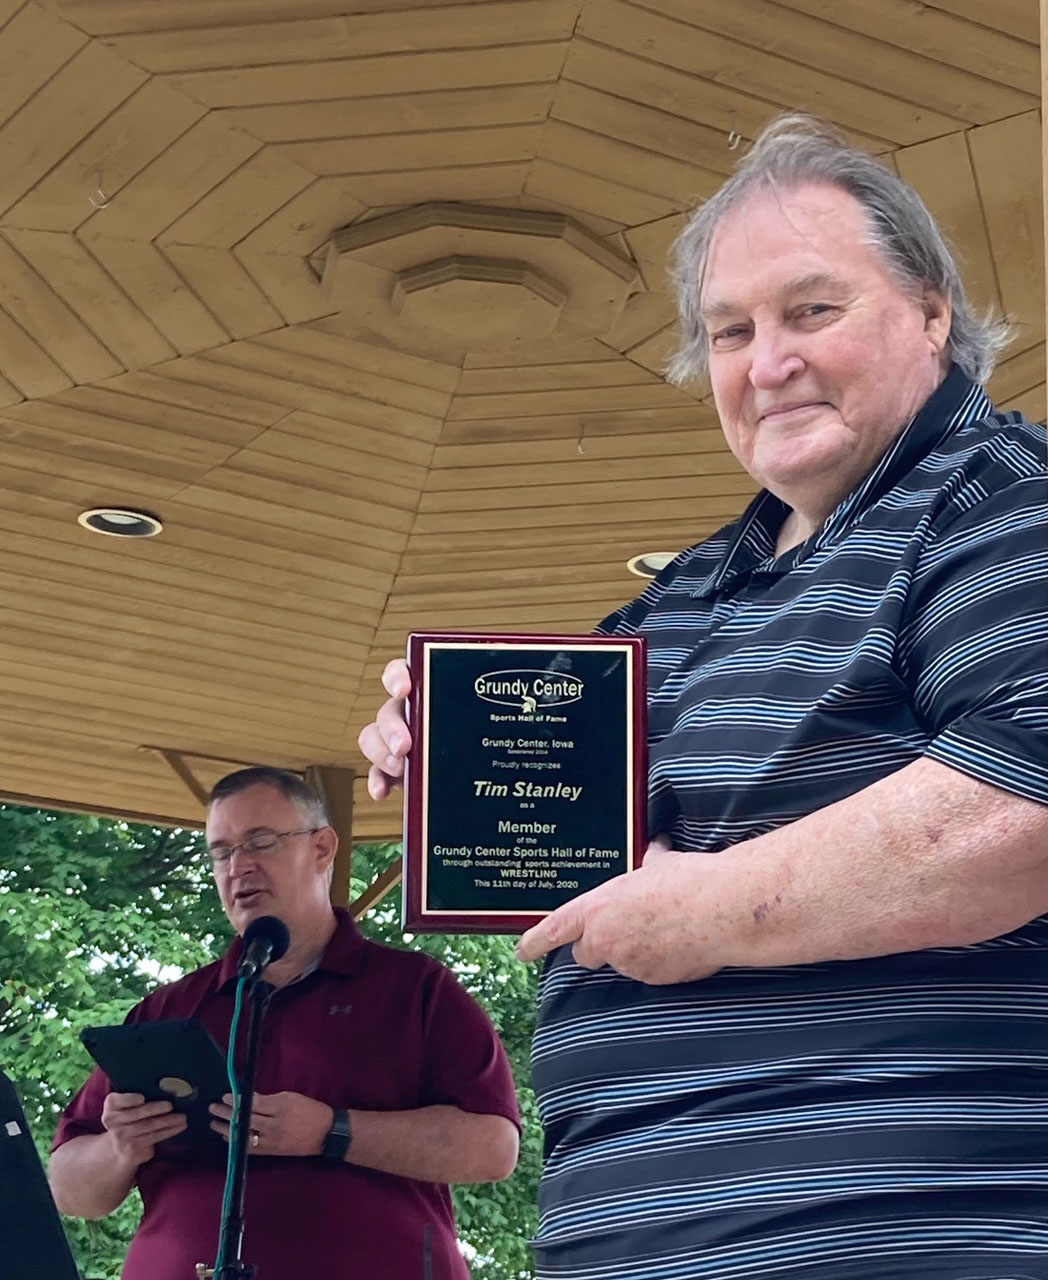 Tim Stanley was honored for his achievement in wrestling with Grundy Center. Doug Van Gelder accepted the award in Stanley's honor.